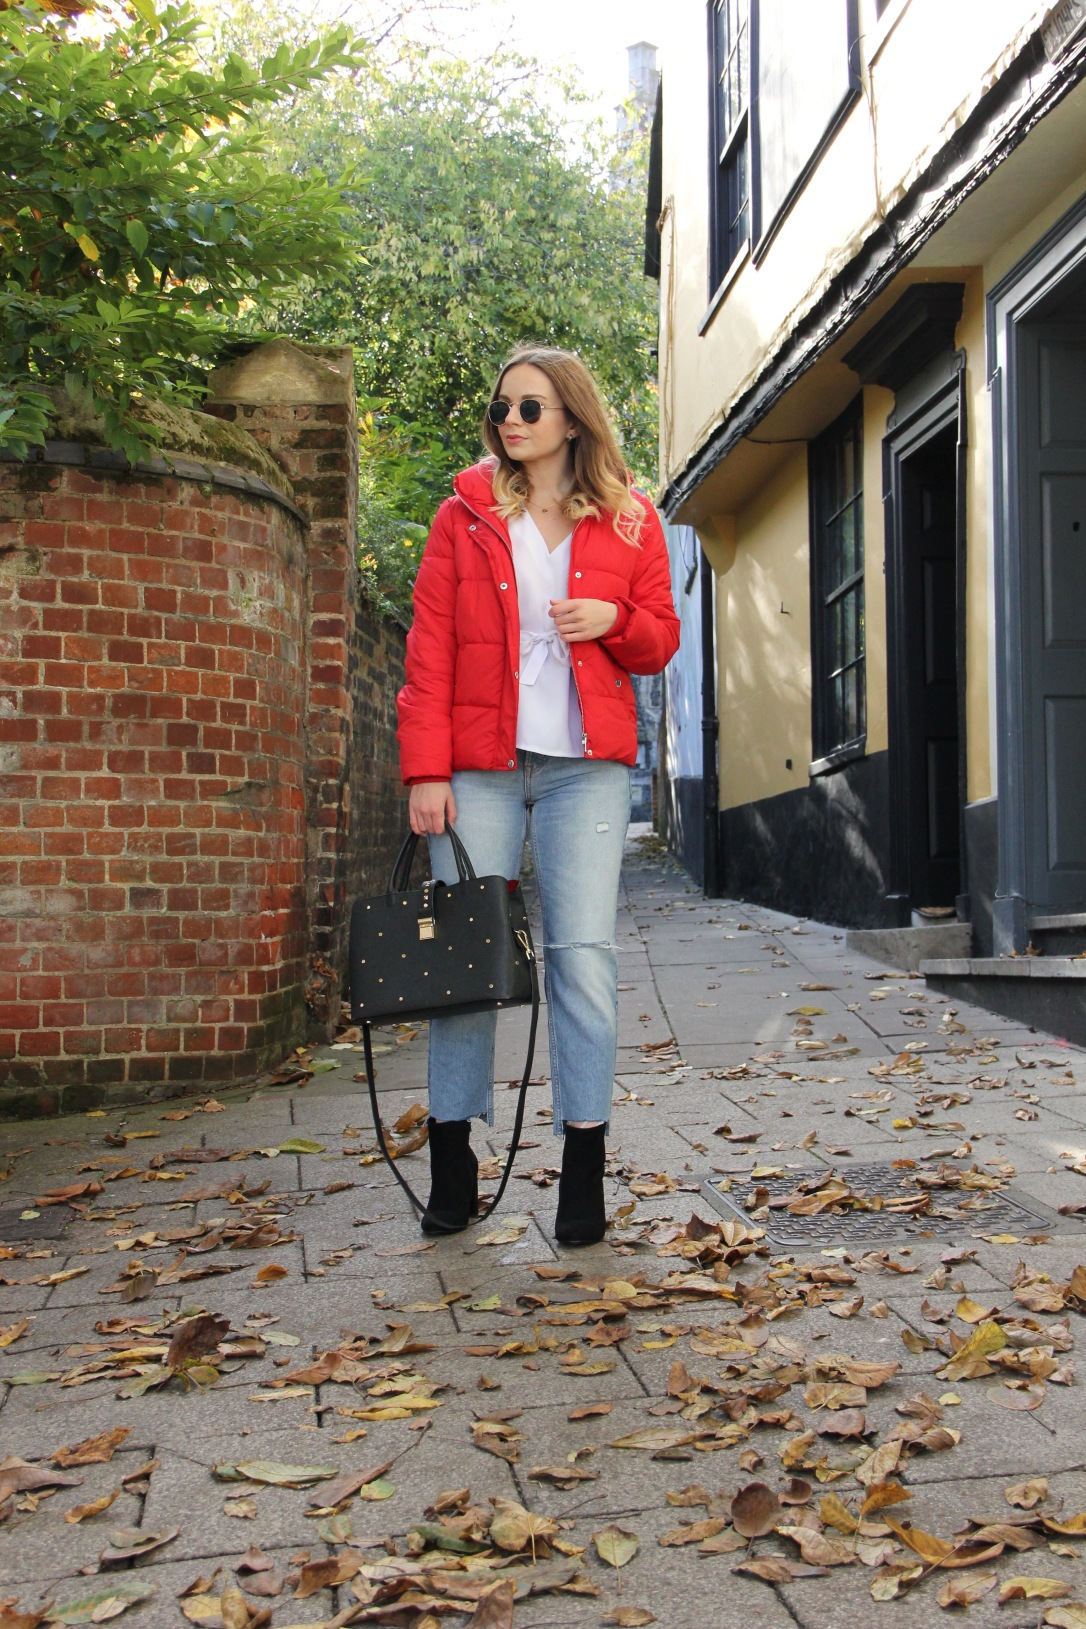 Styling a red puffa jacket